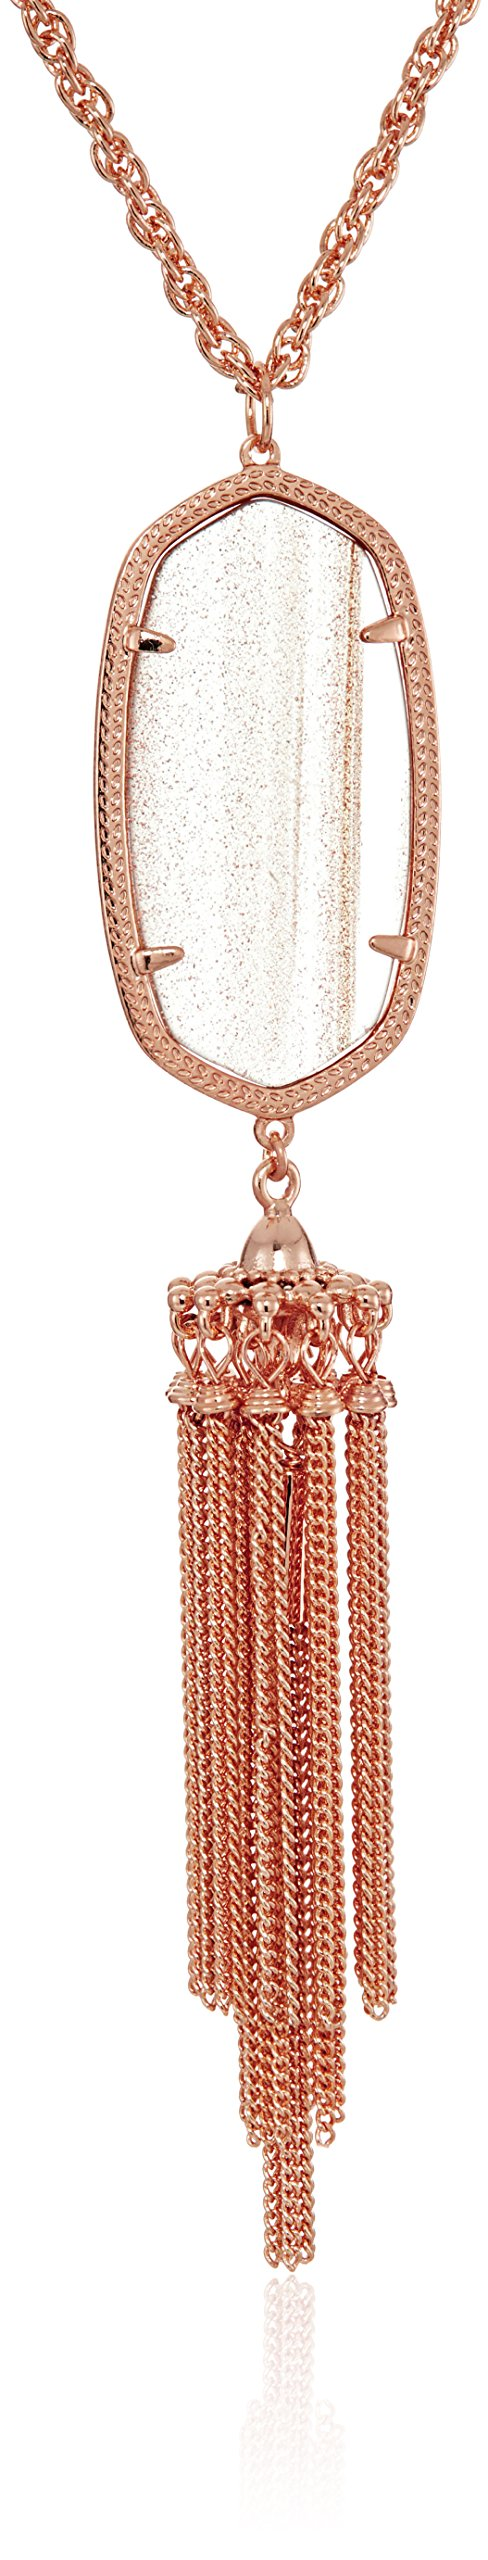 Kendra Scott Signature Rayne Rose Gold Dusted Glass Pendant Necklace, 30'' + 2''  Extender